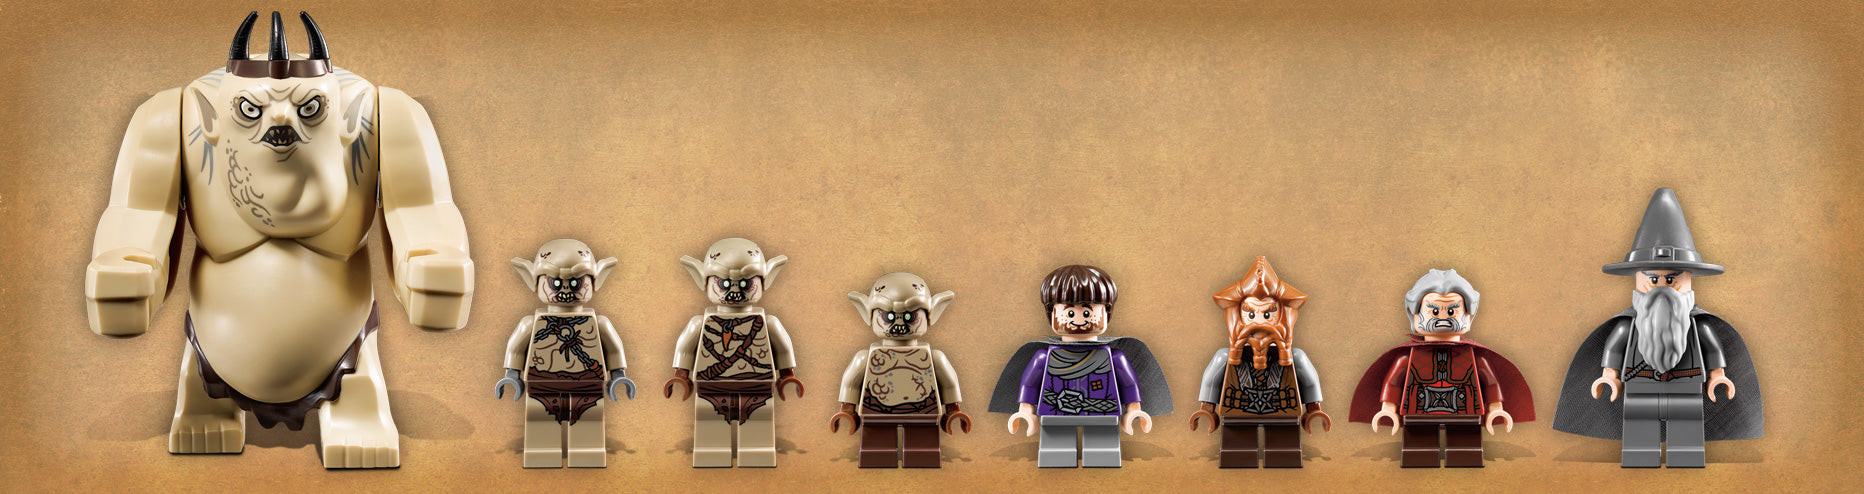 LEGO x The Hobbit 'The Goblin King Battle' Set